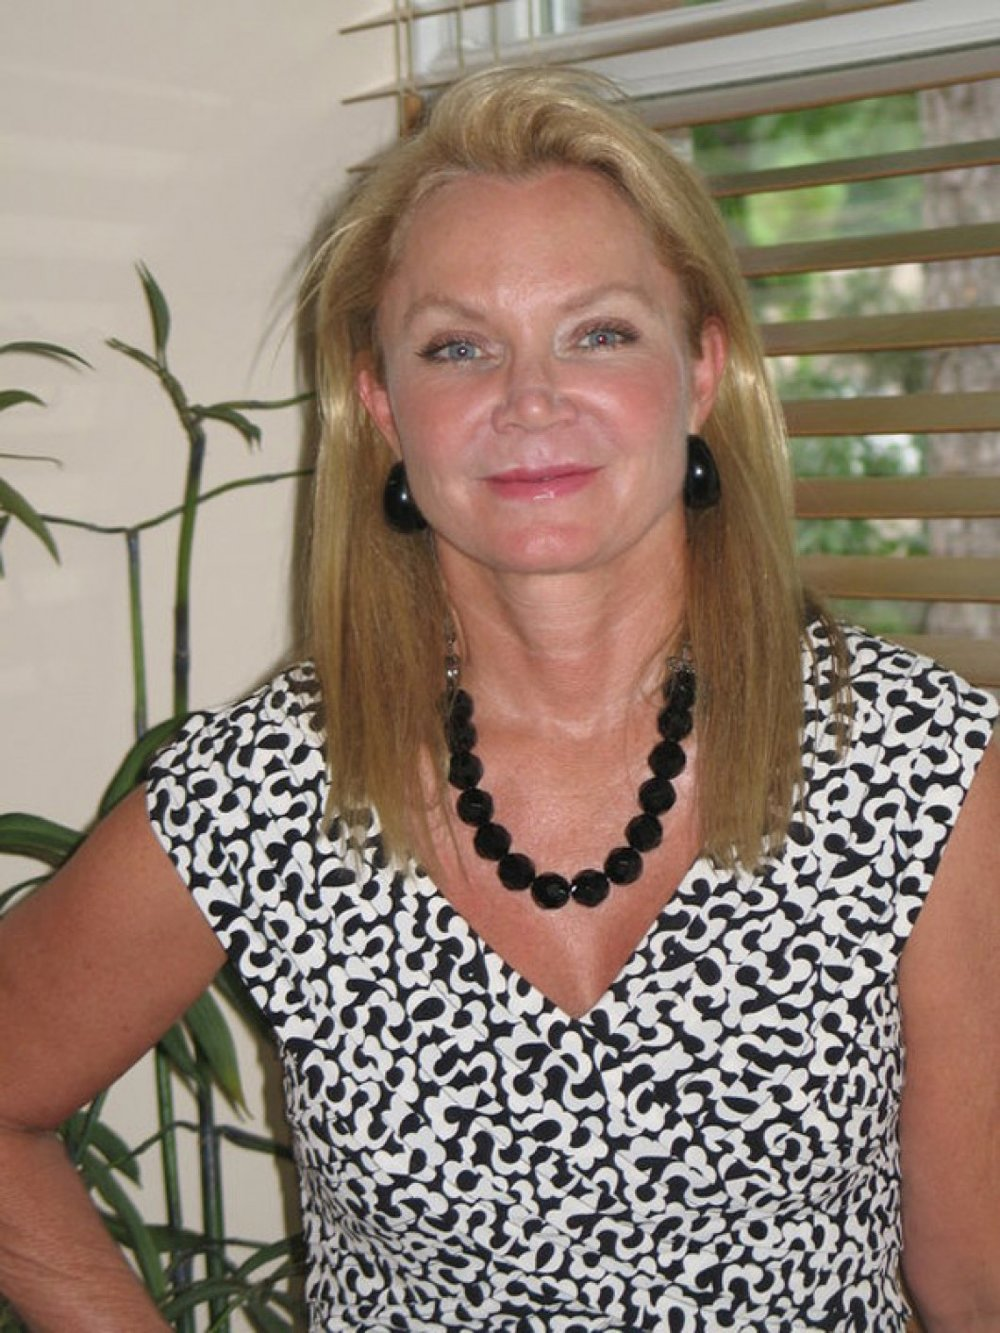 Carol Goodlove - Our Injection Specialist